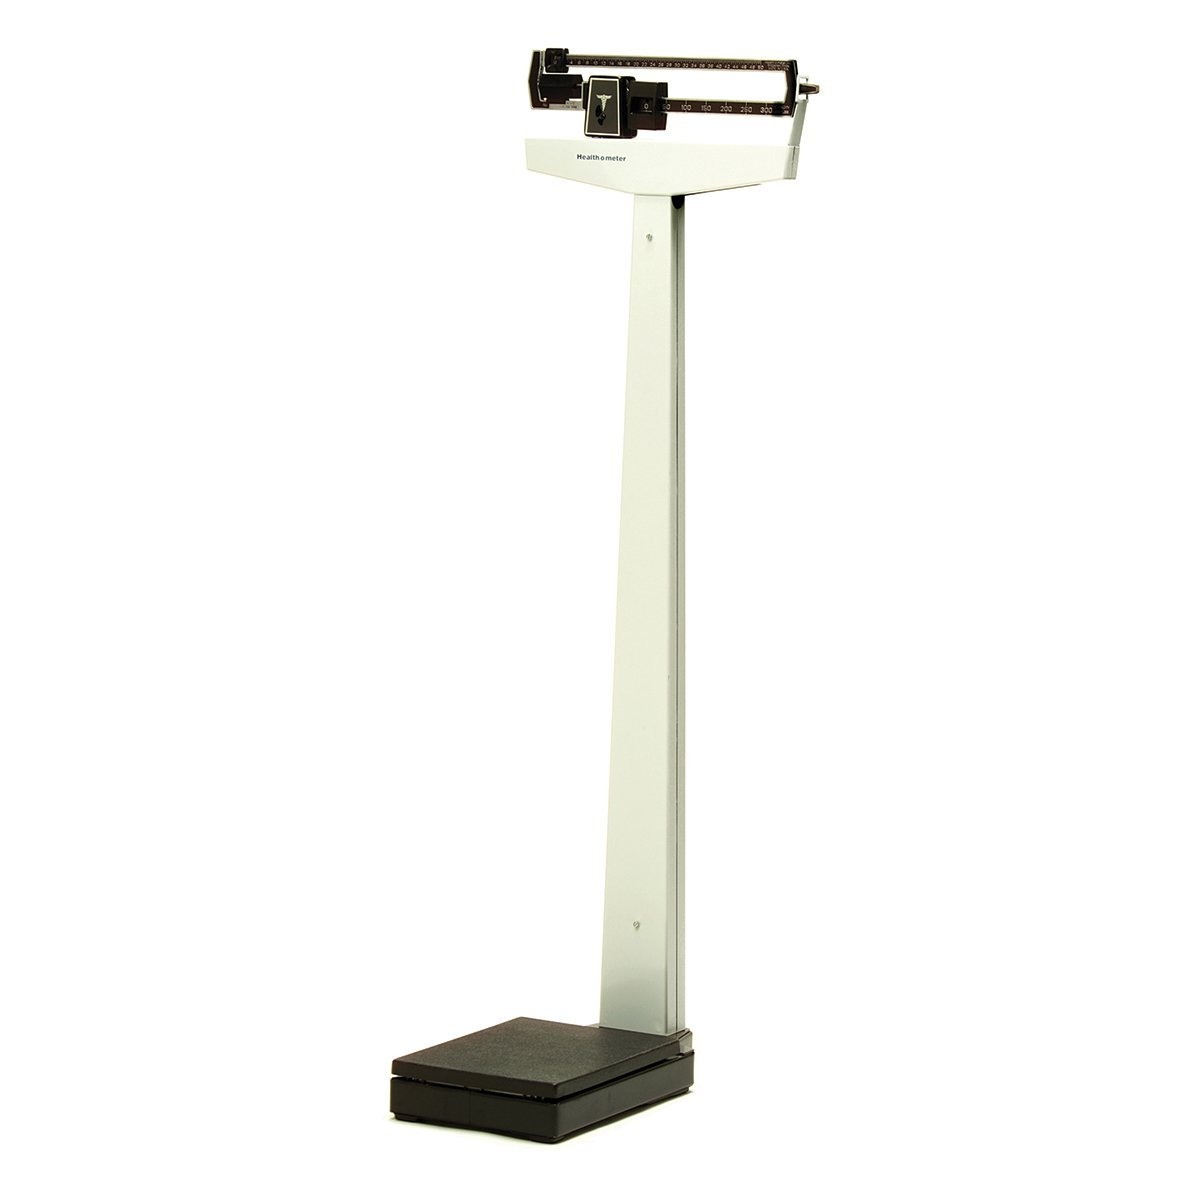 Health o meter Professional 400KL Mechanical Beam Medical Scale - Physician Balance